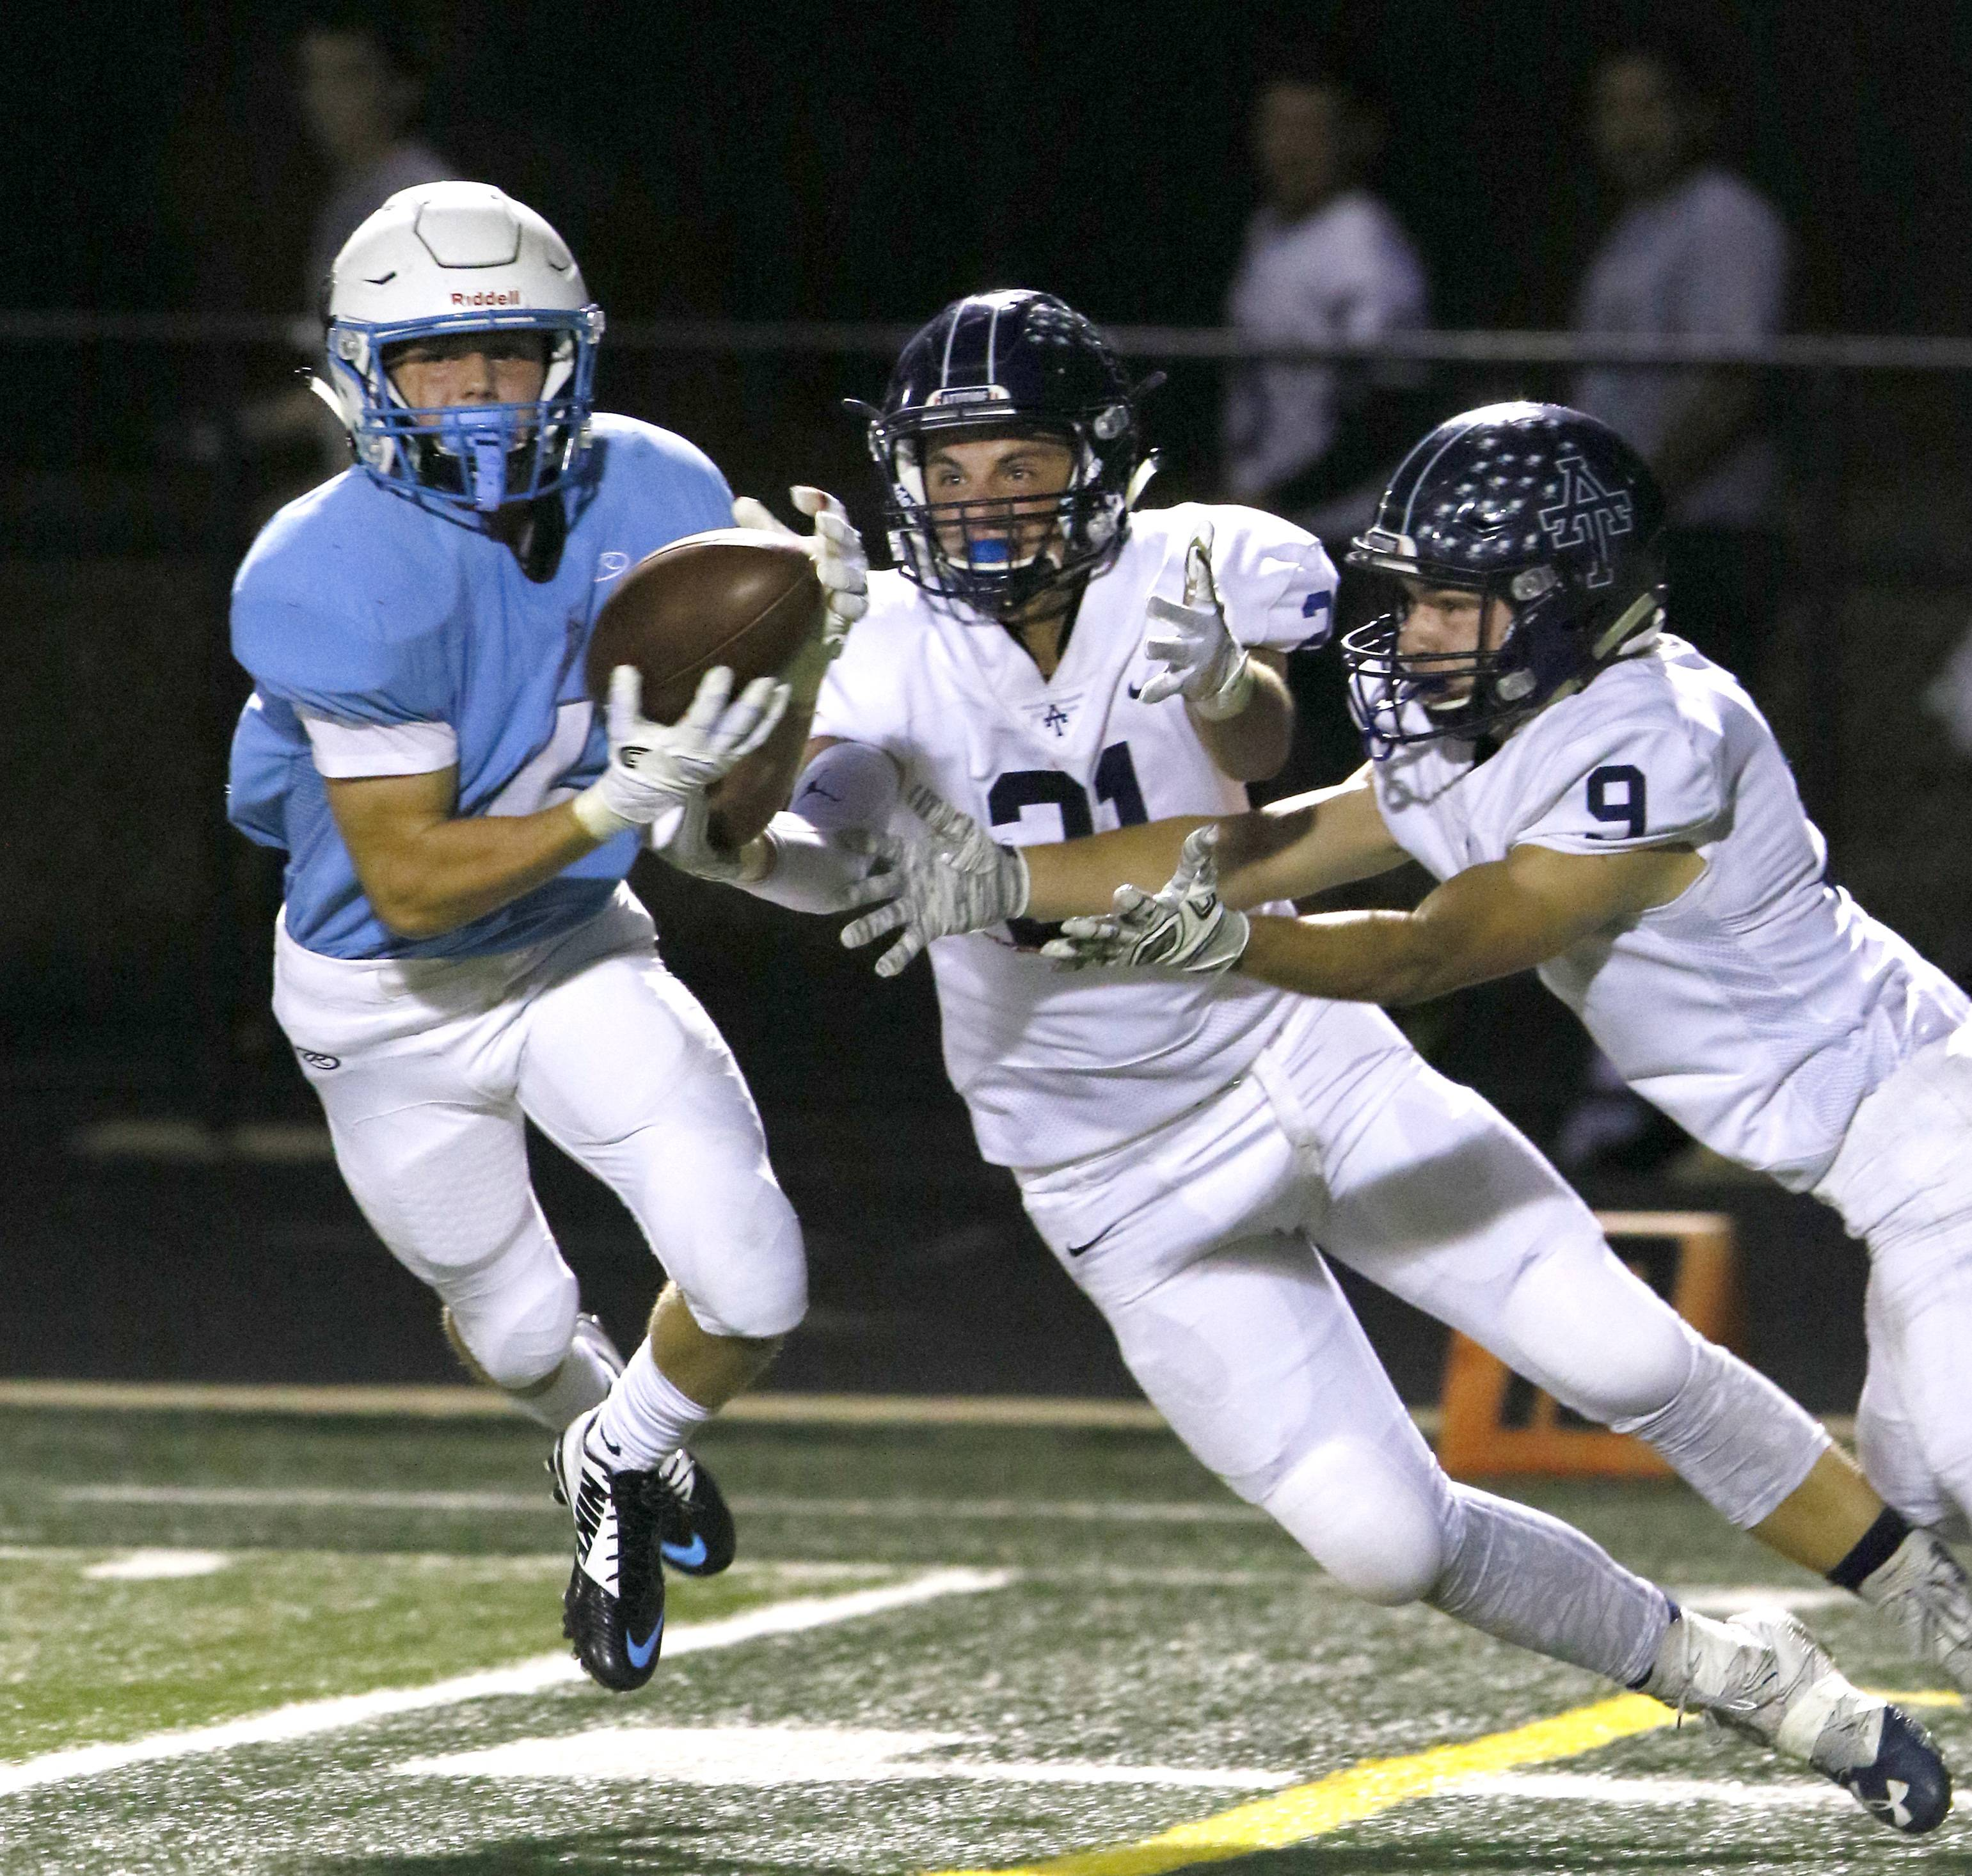 Willowbrook High School's Sam Tumilty, left, steps in front of Addison Trail's Vince Daudelin (21) and Dennis Ionikov (9) to intercept the ball and run for a 90-yard touchdown during first half action, September 15, 2017, in Villa Park.